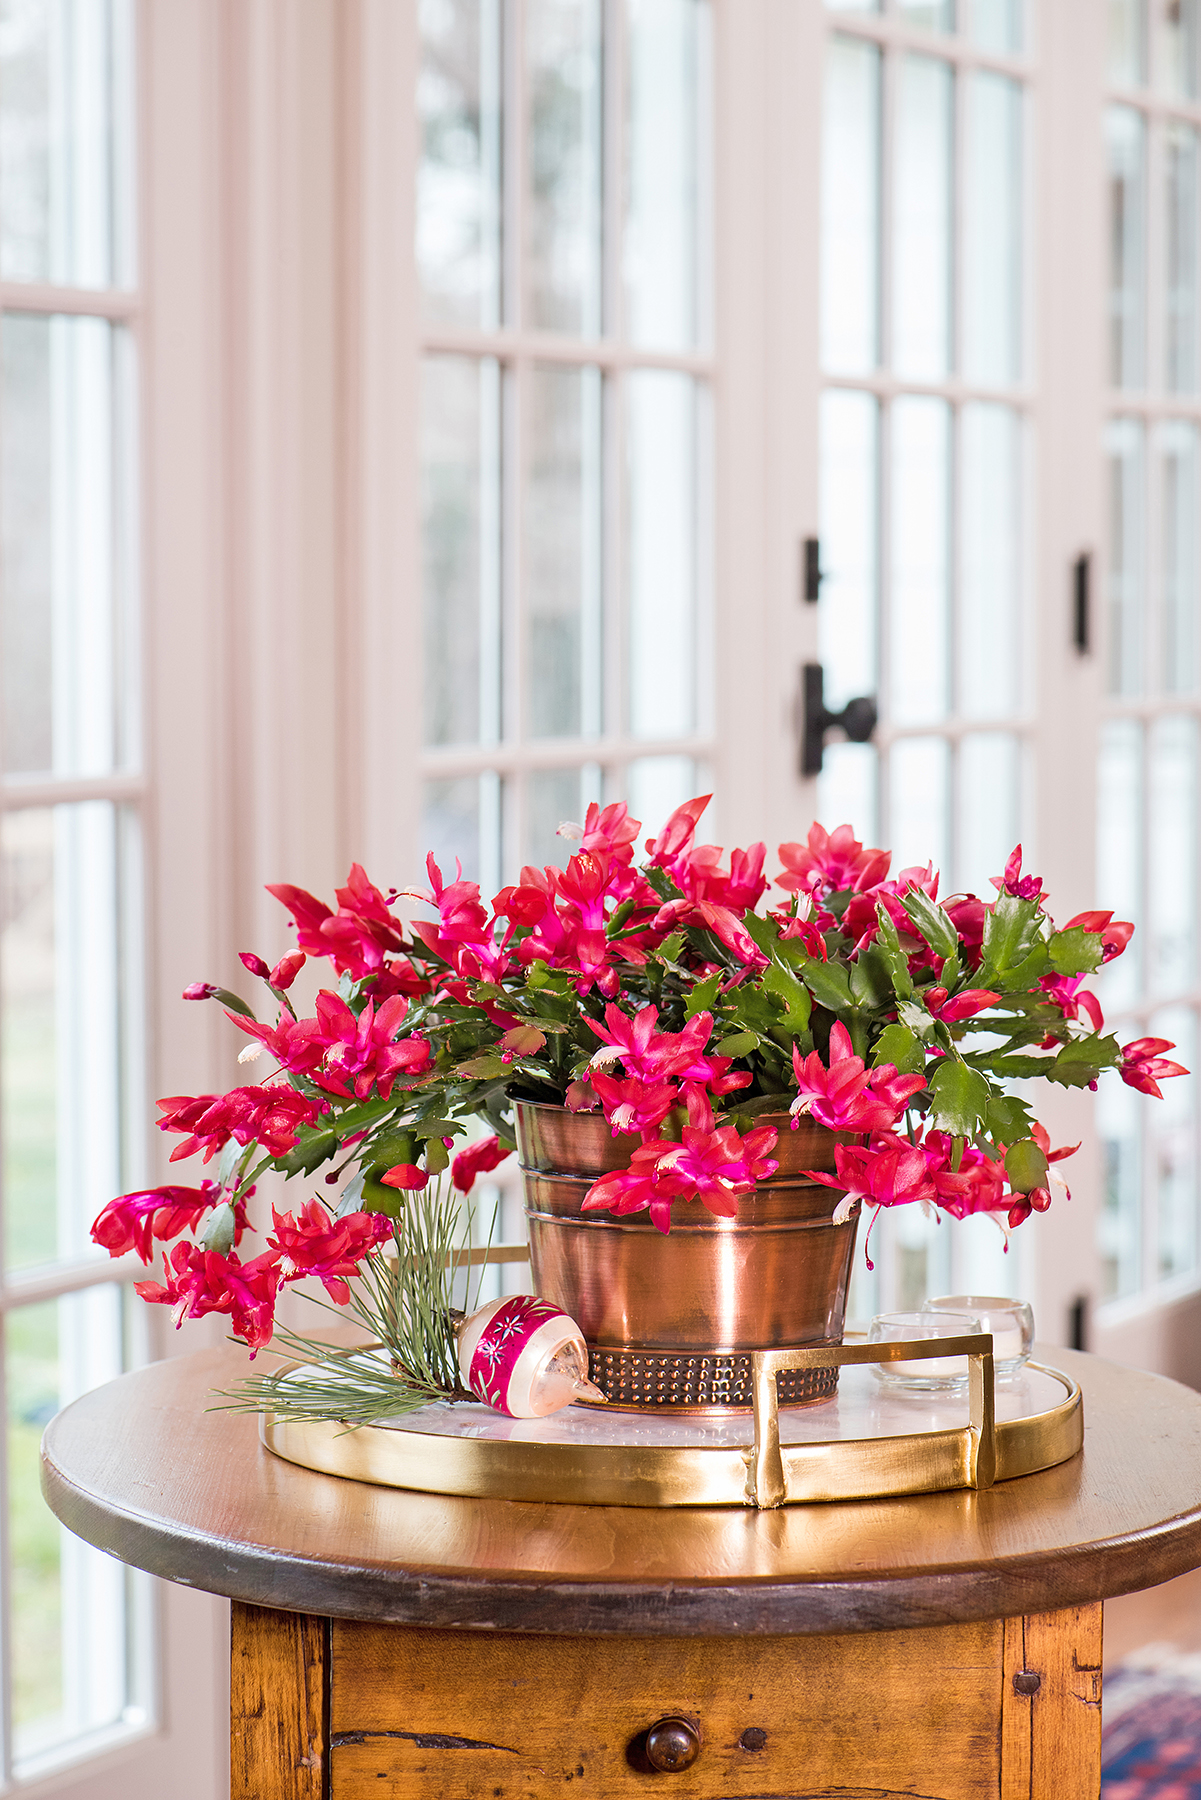 In a Drafty Room: Christmas Cactus